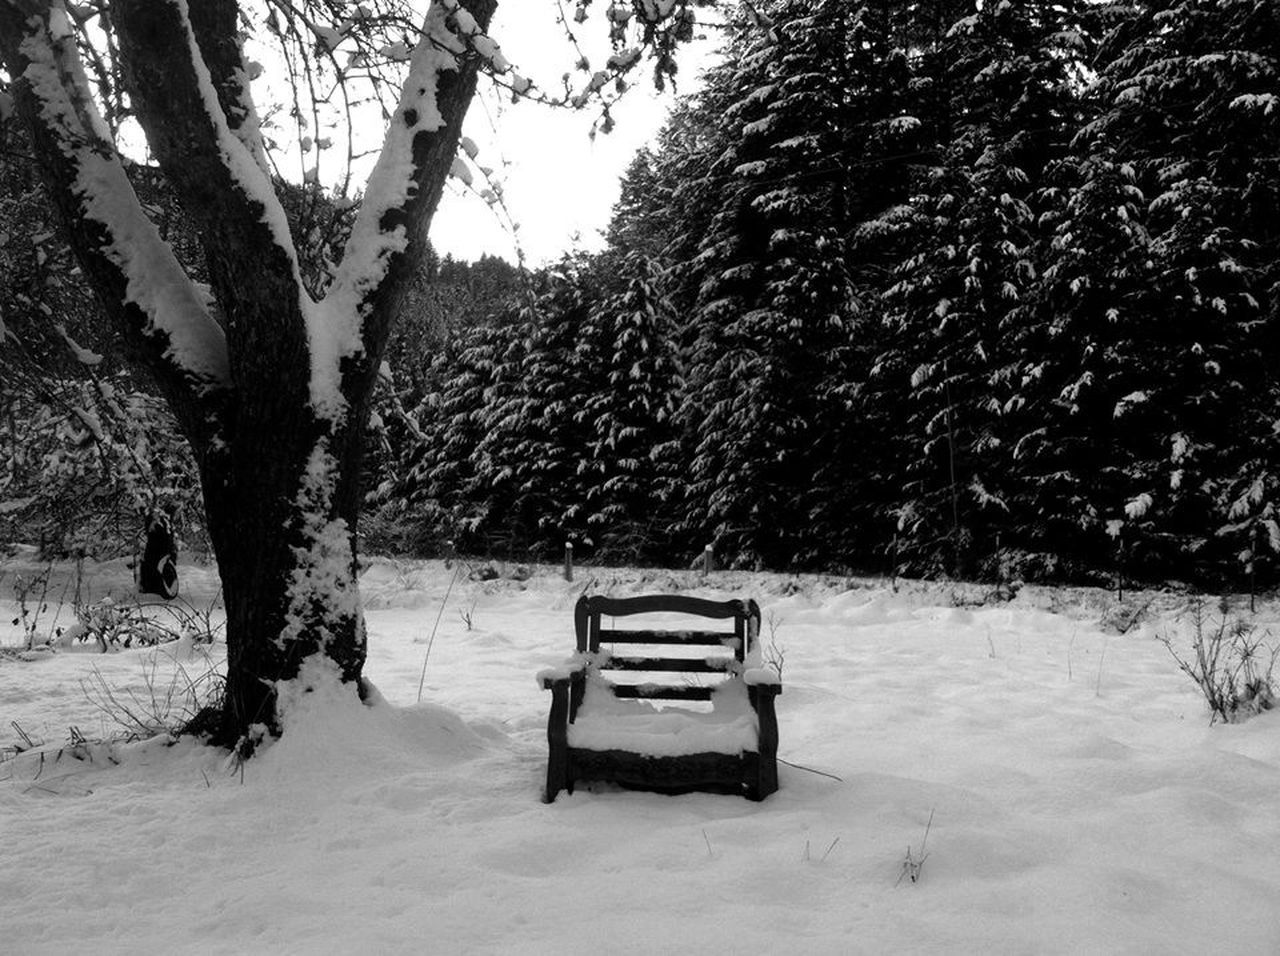 tree, snow, winter, cold temperature, nature, landscape, tranquility, outdoors, tree trunk, scenics, beauty in nature, no people, day, sky